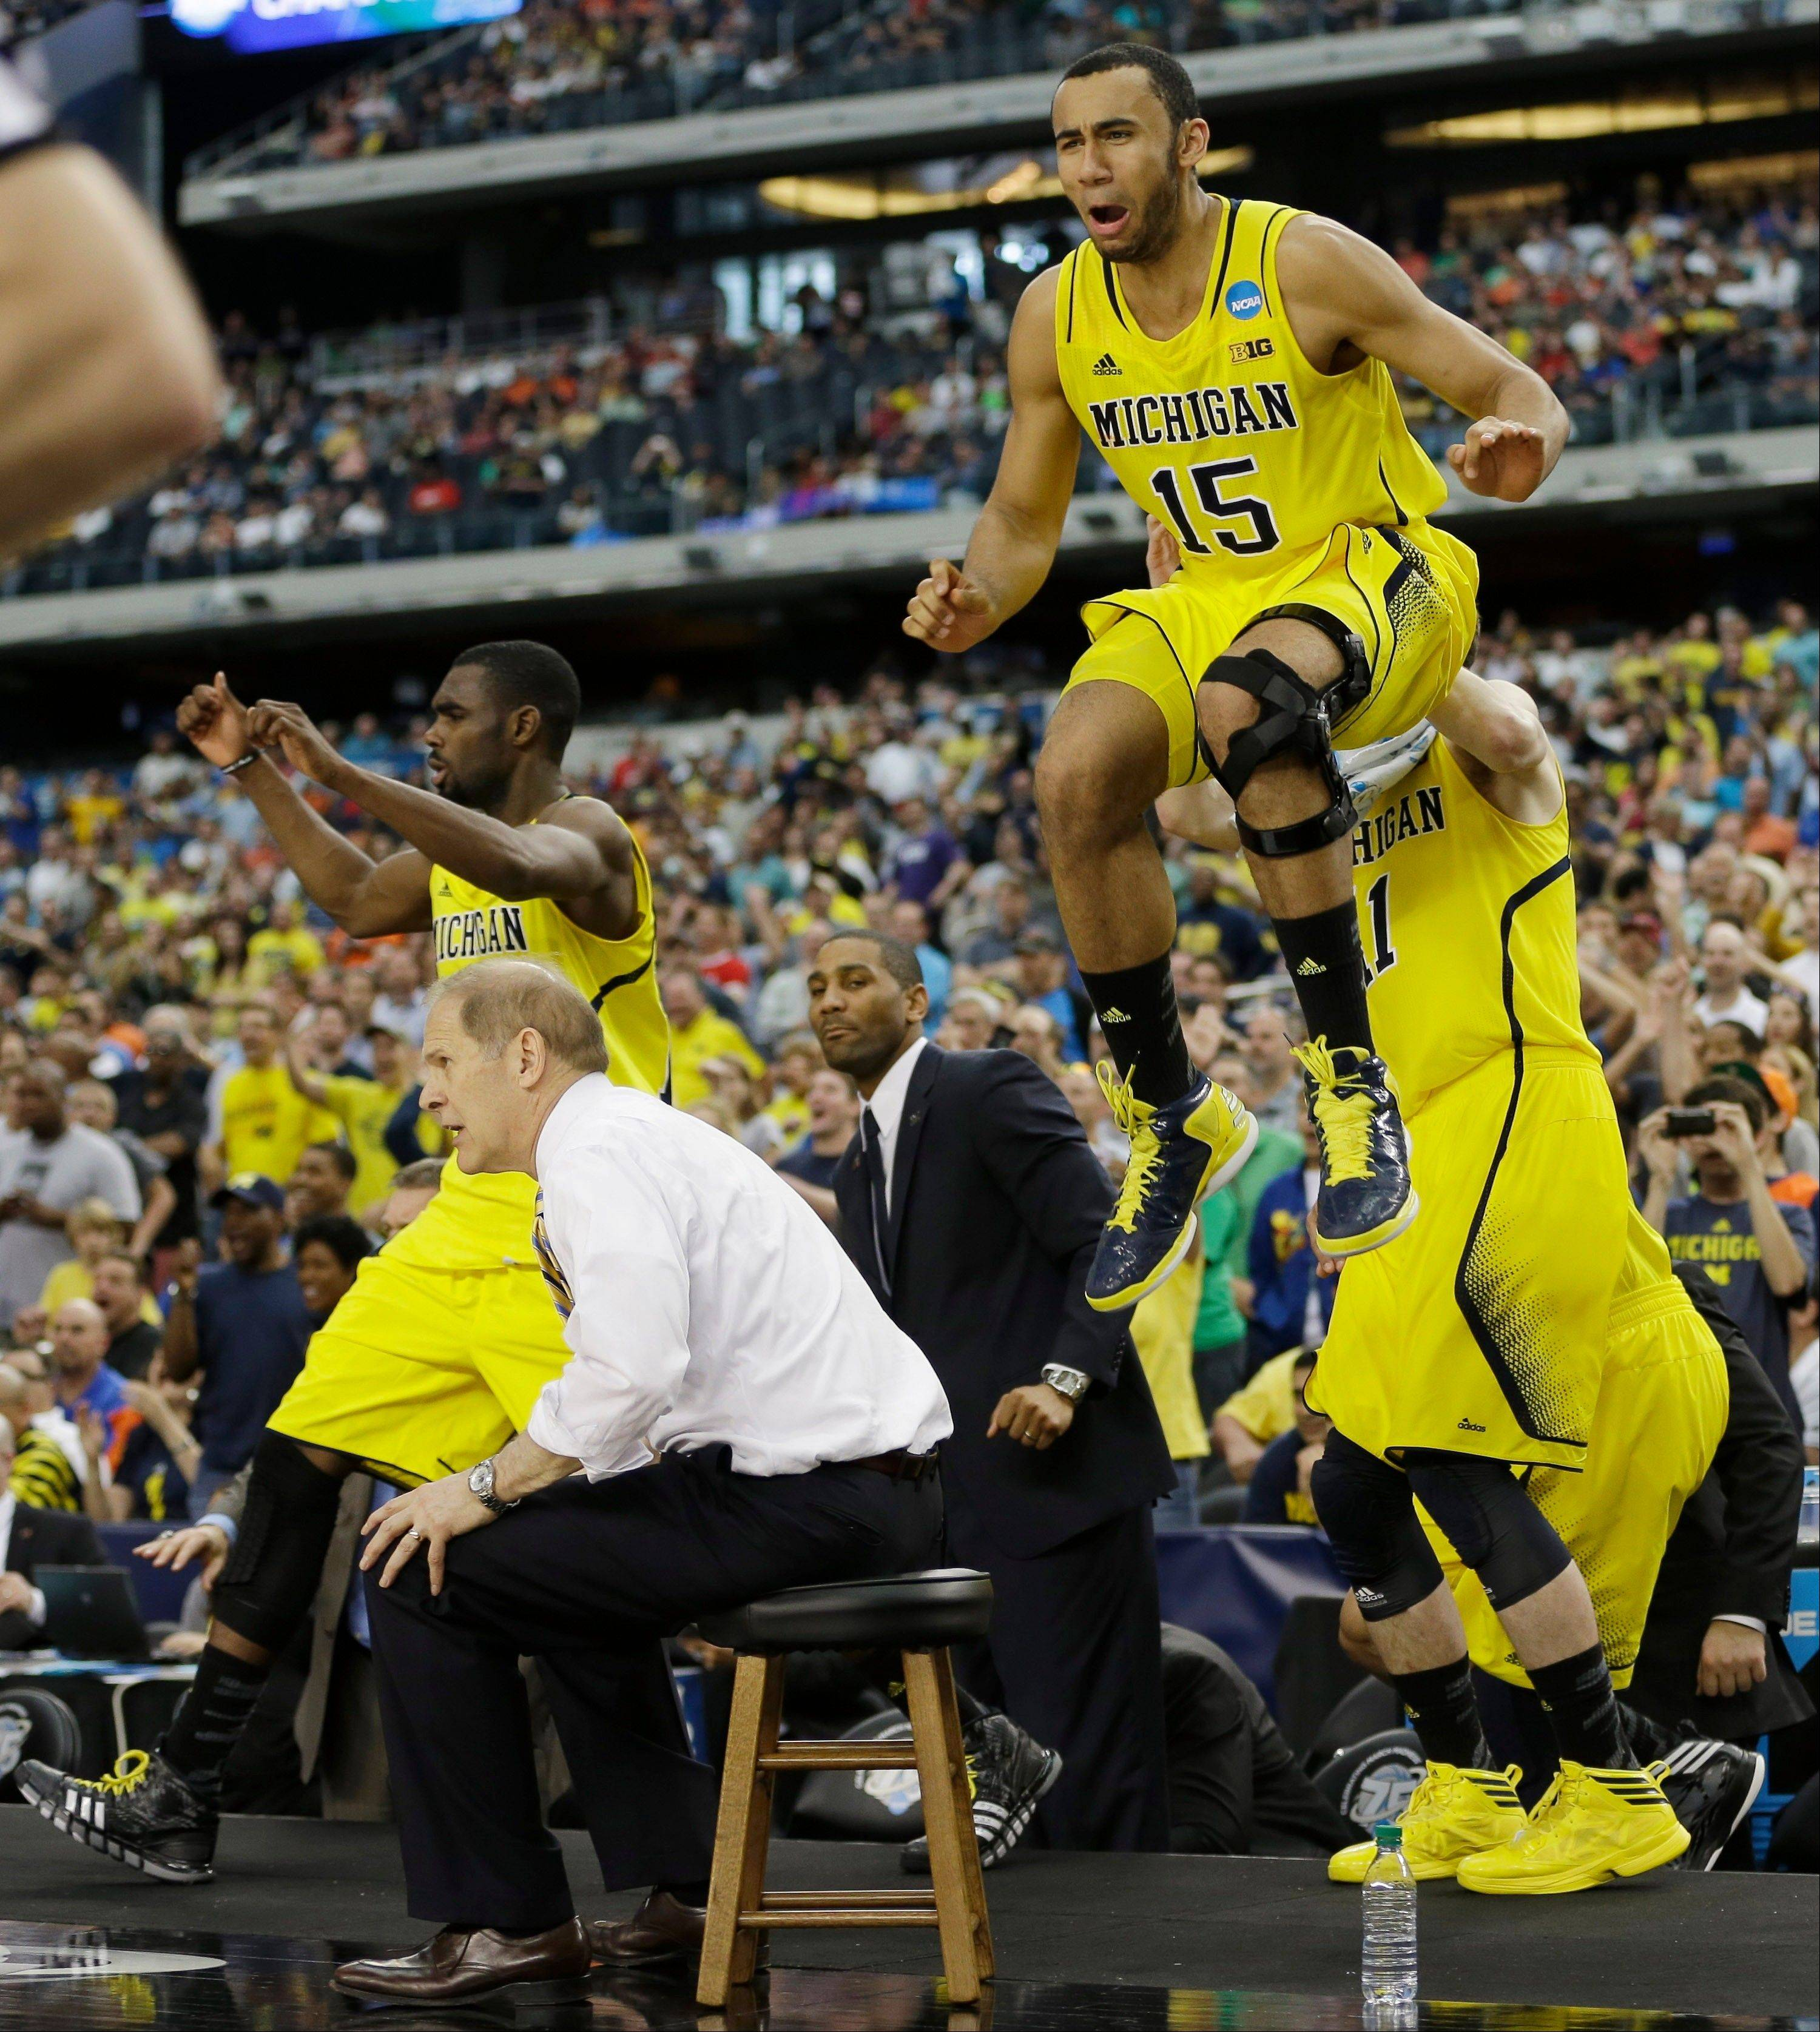 Michigan head coach John Beilein and players including Jon Horford (15) react against Florida during the second half of a regional final game in the NCAA college basketball tournament, Sunday, March 31, 2013, in Arlington,